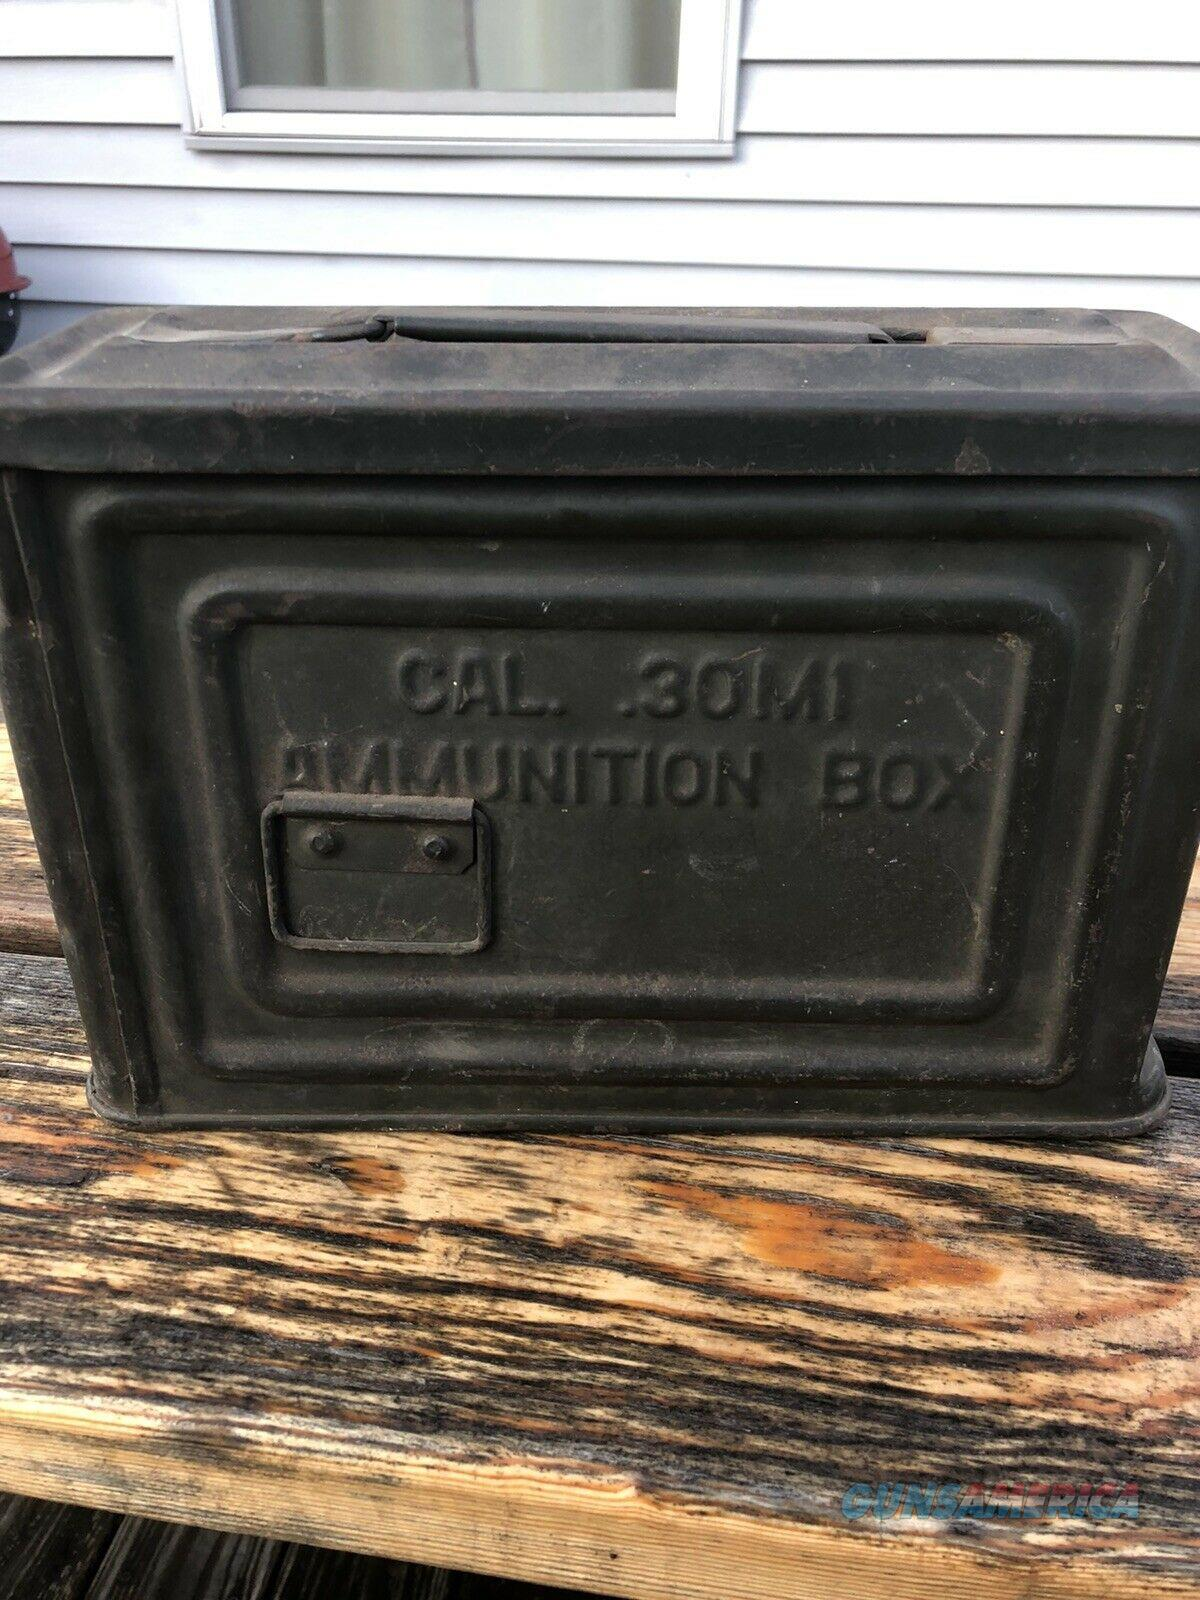 WW2 US ARMY AMMUNITION Ammo CAN Box Cal 30 M1 Flaming Bomb REEVES WWII Military.  Non-Guns > Gun Cases